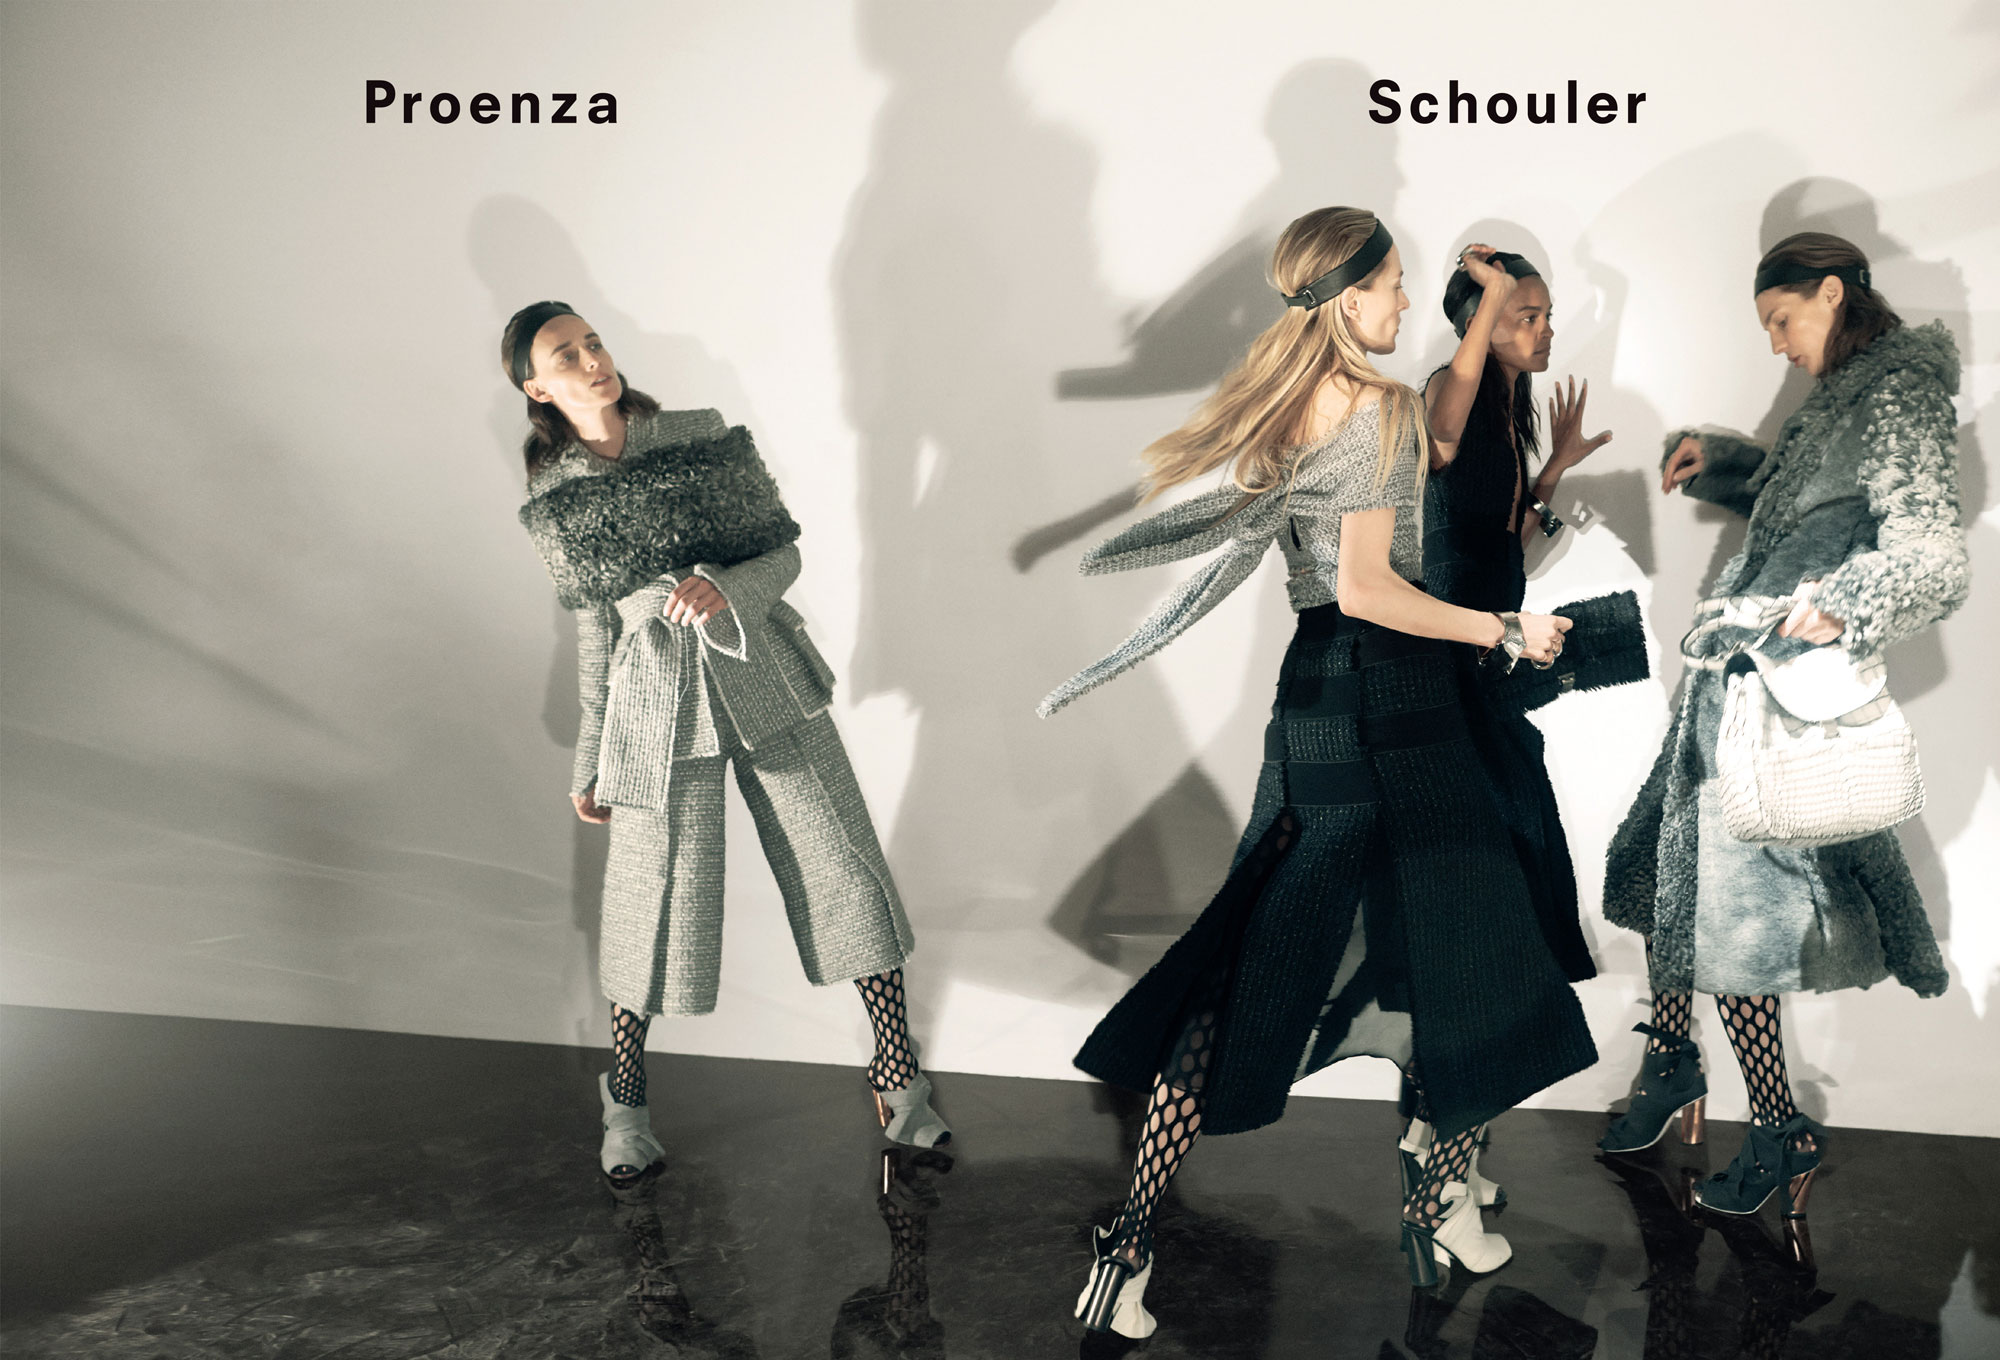 anne-catherine-lacroix-karolin-wolter-liisa-winkler-liya-kebede-by-david-sims-for-proenza-schouler-fall-winter-2015-2016-3